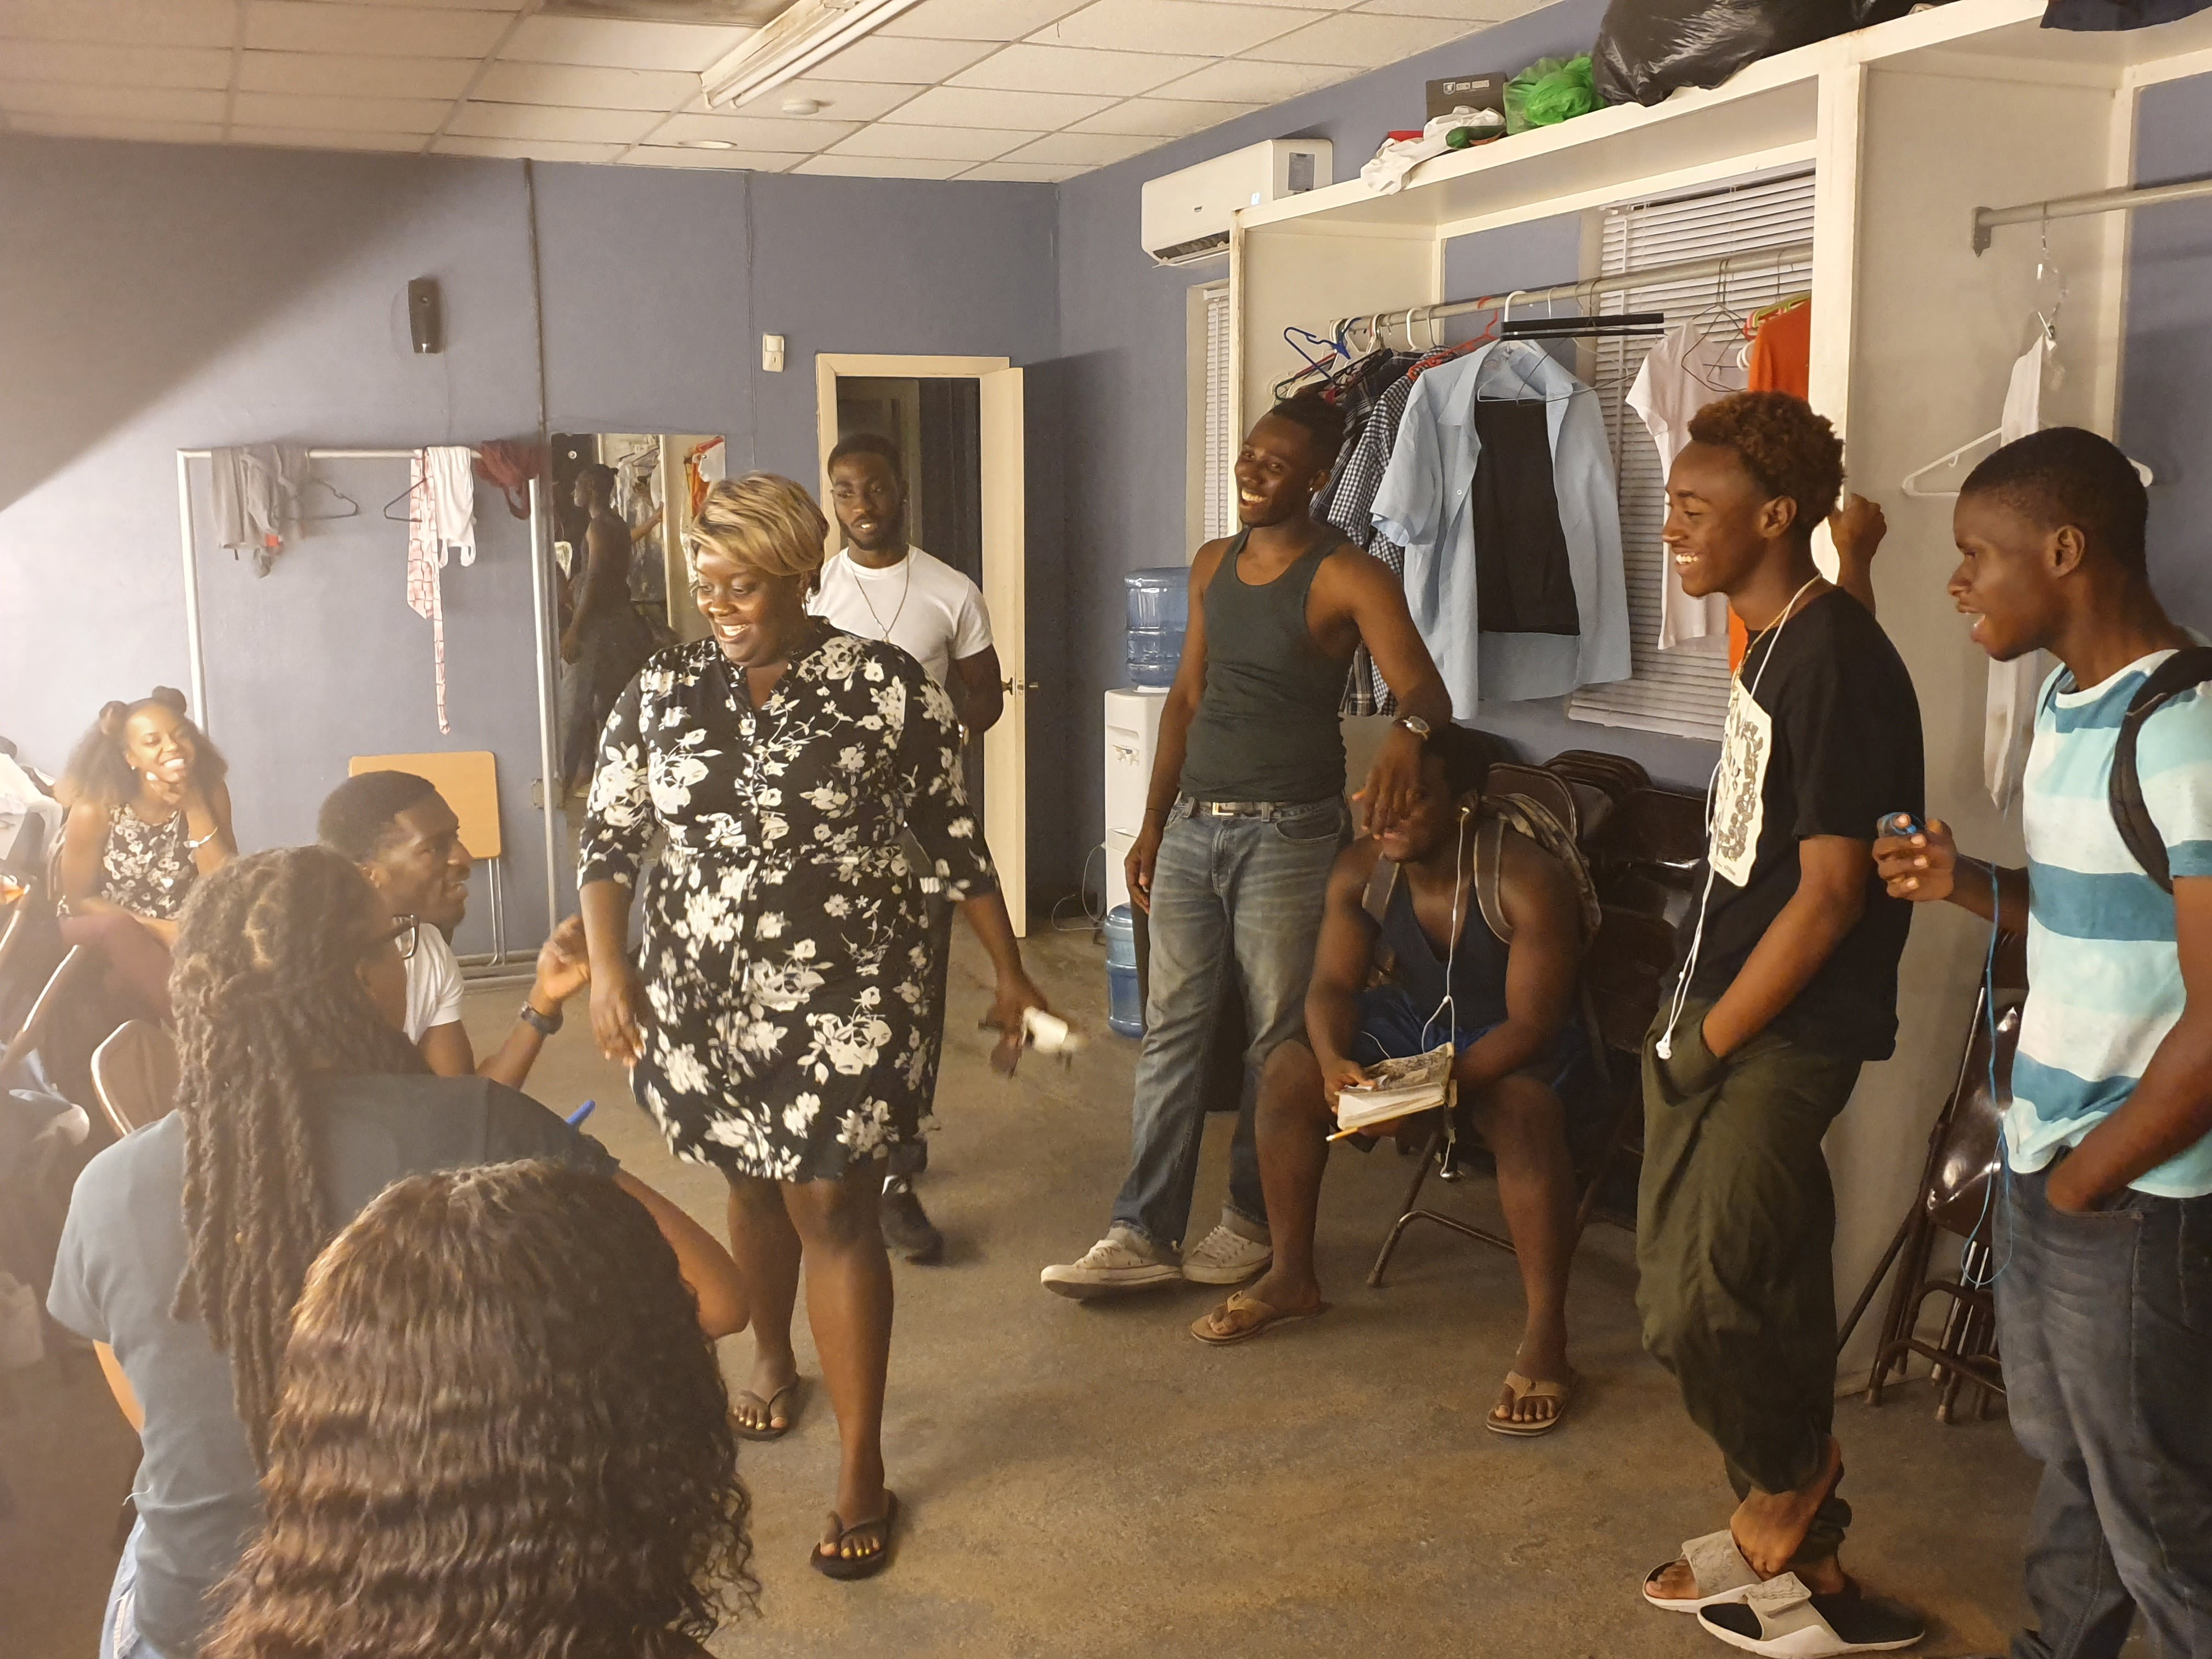 """Struggles and Dreams"" stage play highlights societal issues, encourages youth"